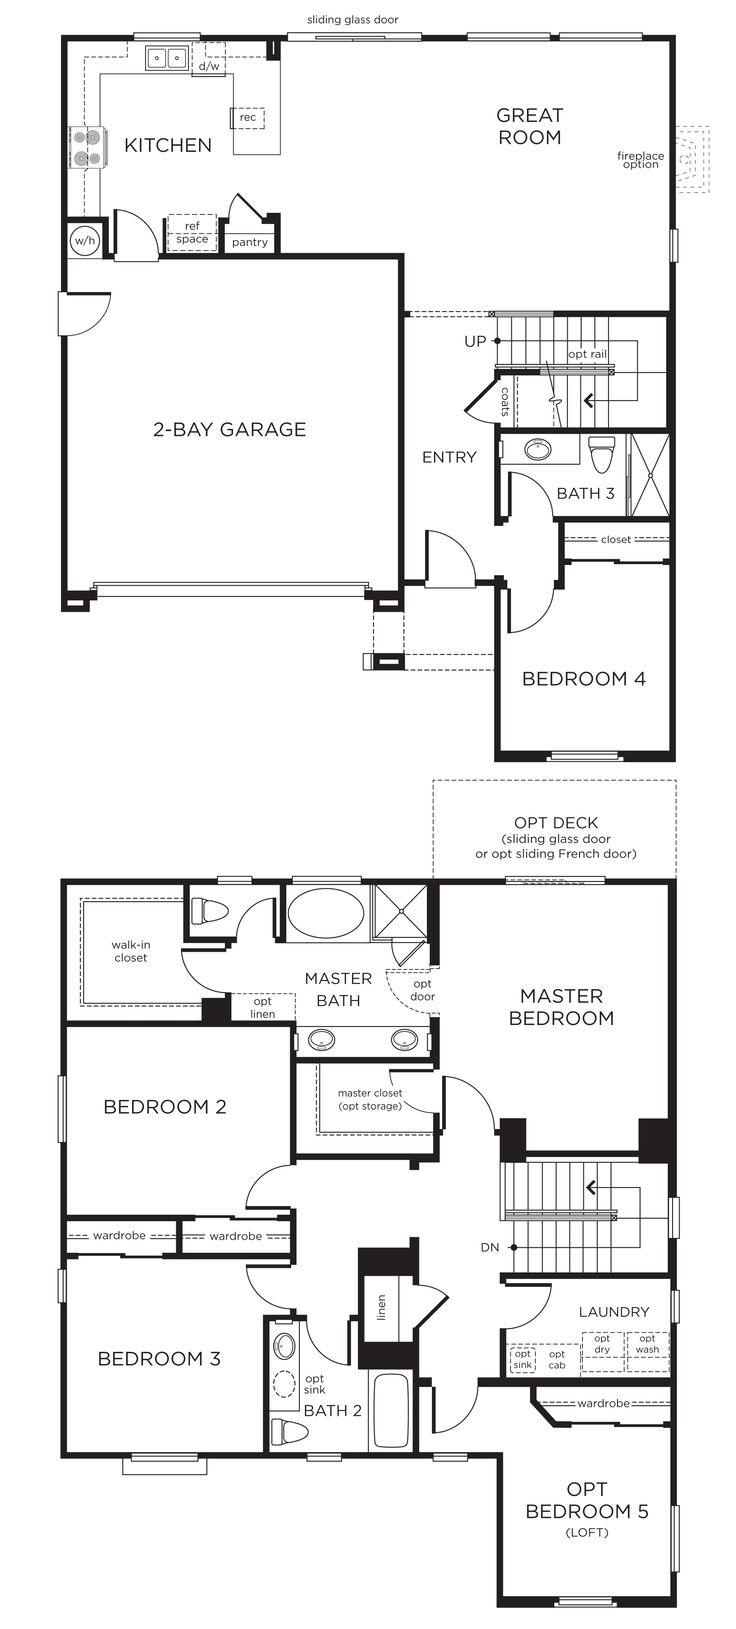 50 best luxury house plans images on pinterest luxurious for Floor plans los angeles